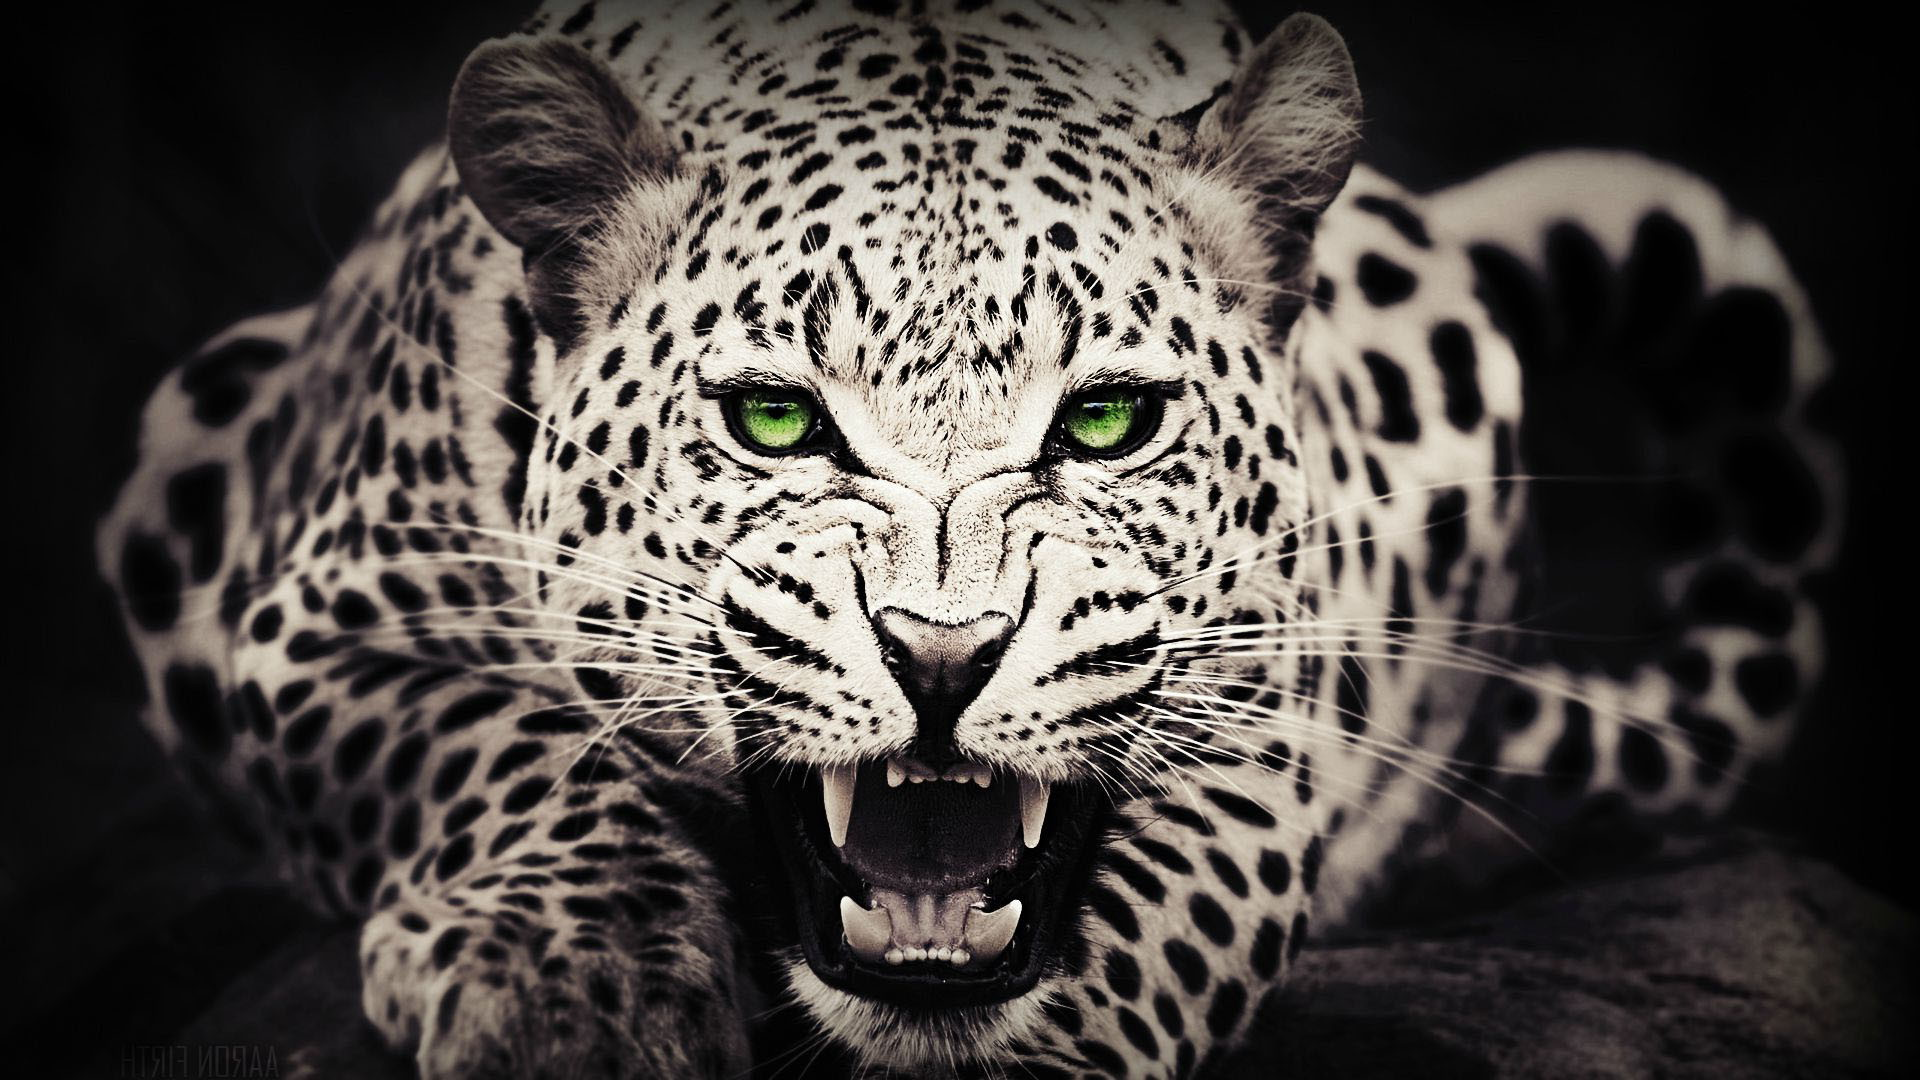 Cheetah Wallpaper Hd